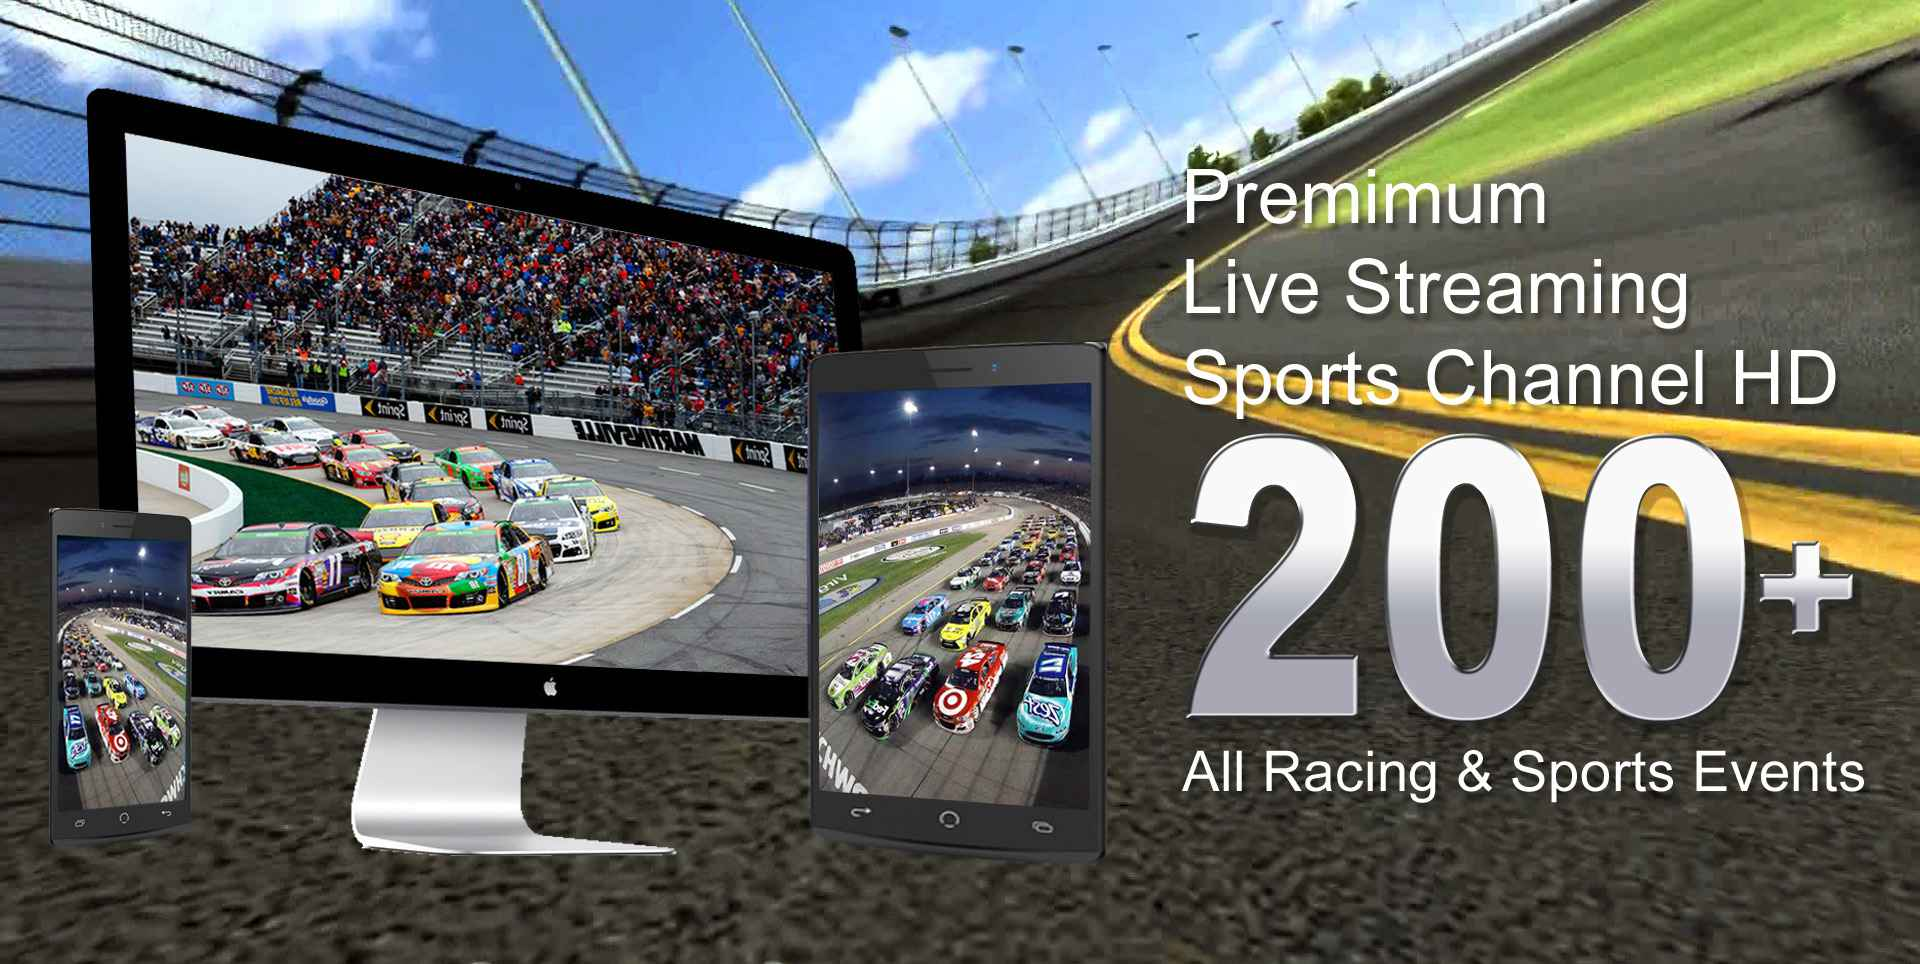 cheez%20it%20355 2015 NASCAR Cheez It 355 Race Live